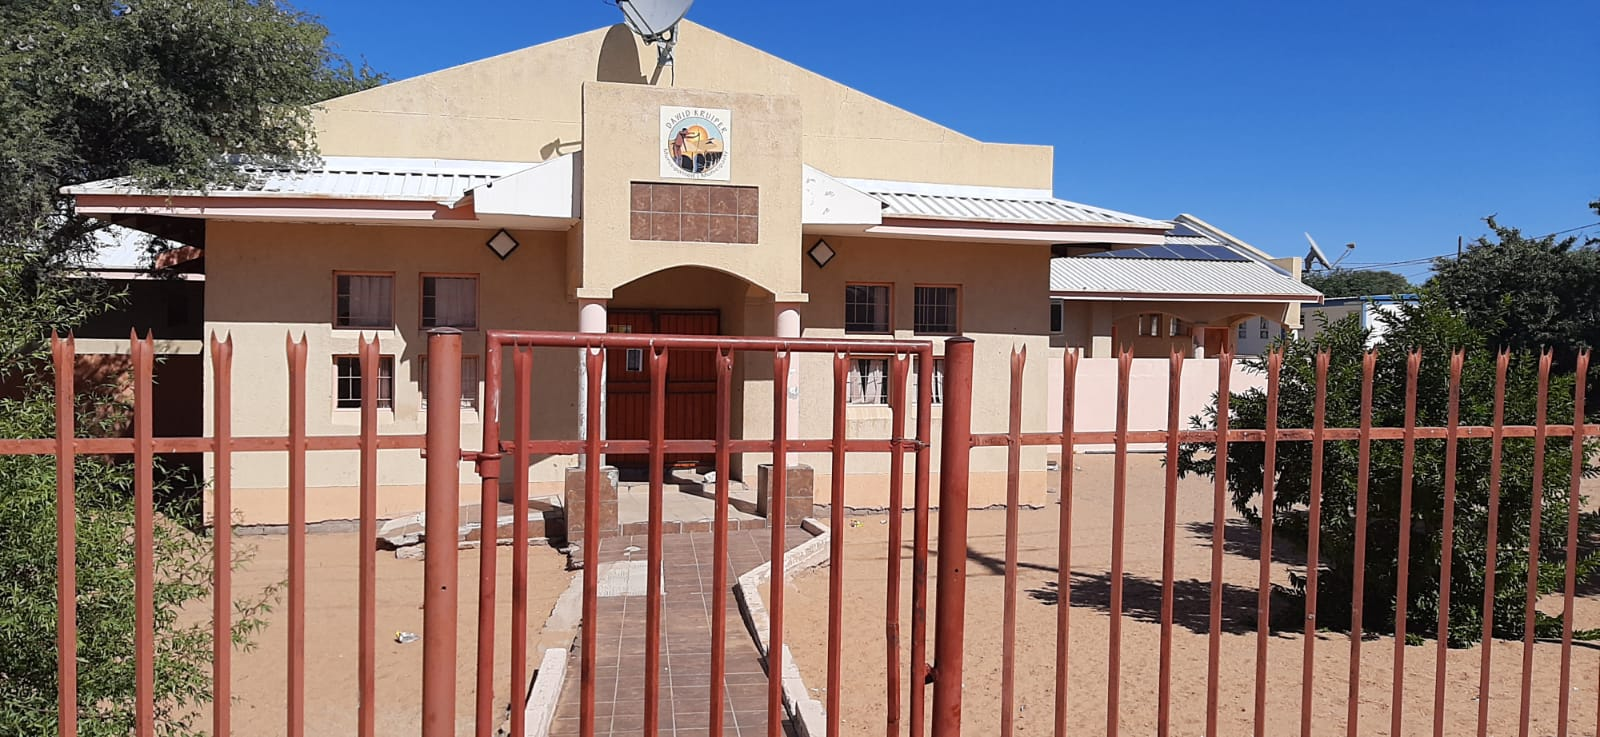 A copy of the statement was placed at the Dawid Kruiper Community Hall